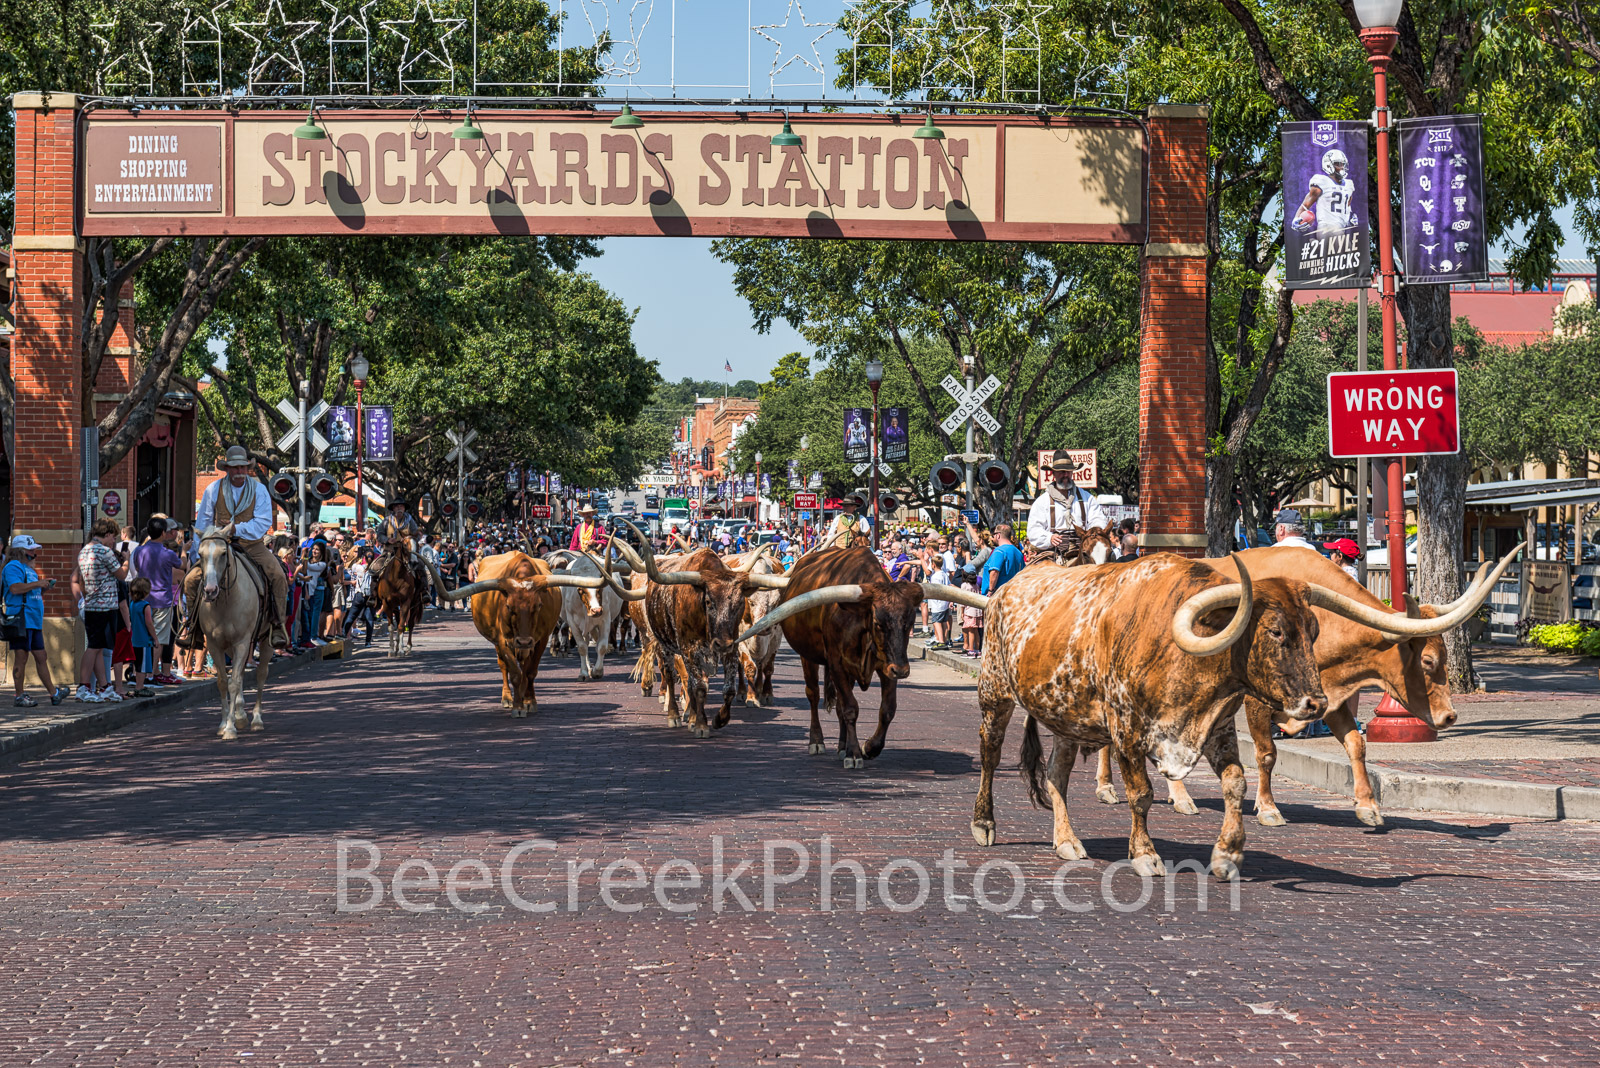 Stockyard Cattle Drive  - The Fort Worth Stockyard cattle drive as cowboy used to do at the turn of the 19th century. Today it...